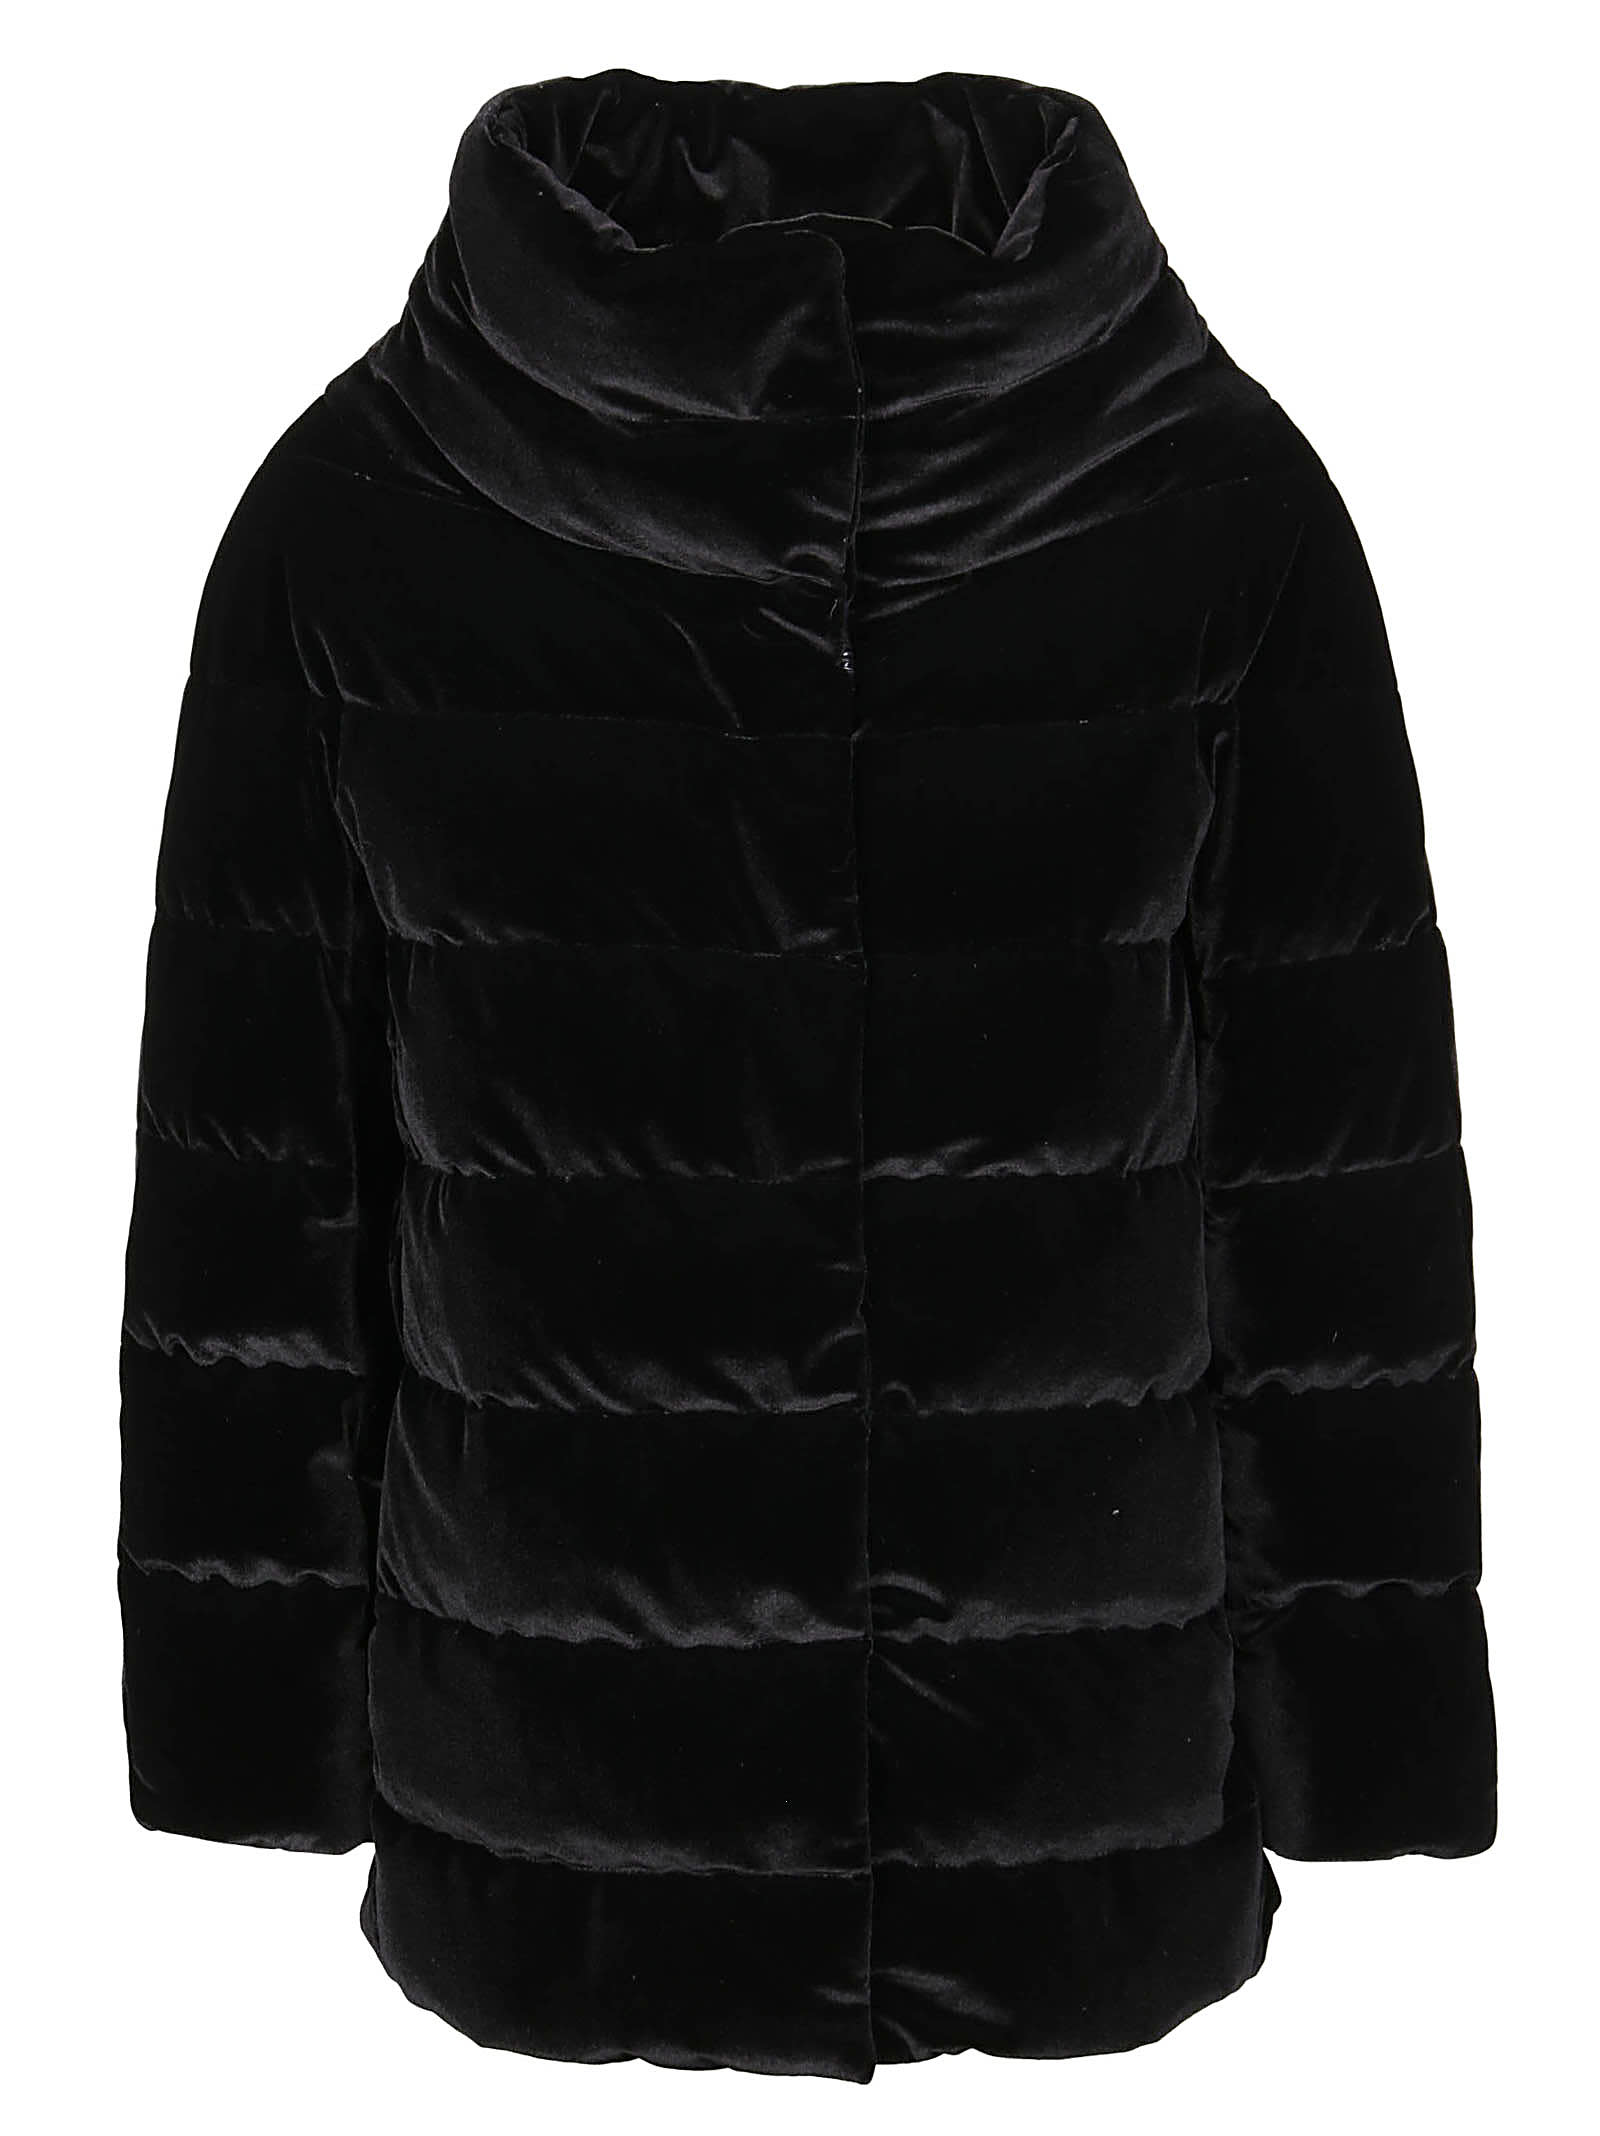 outlet store 530d2 9e2c3 Herno Piumino Giacca